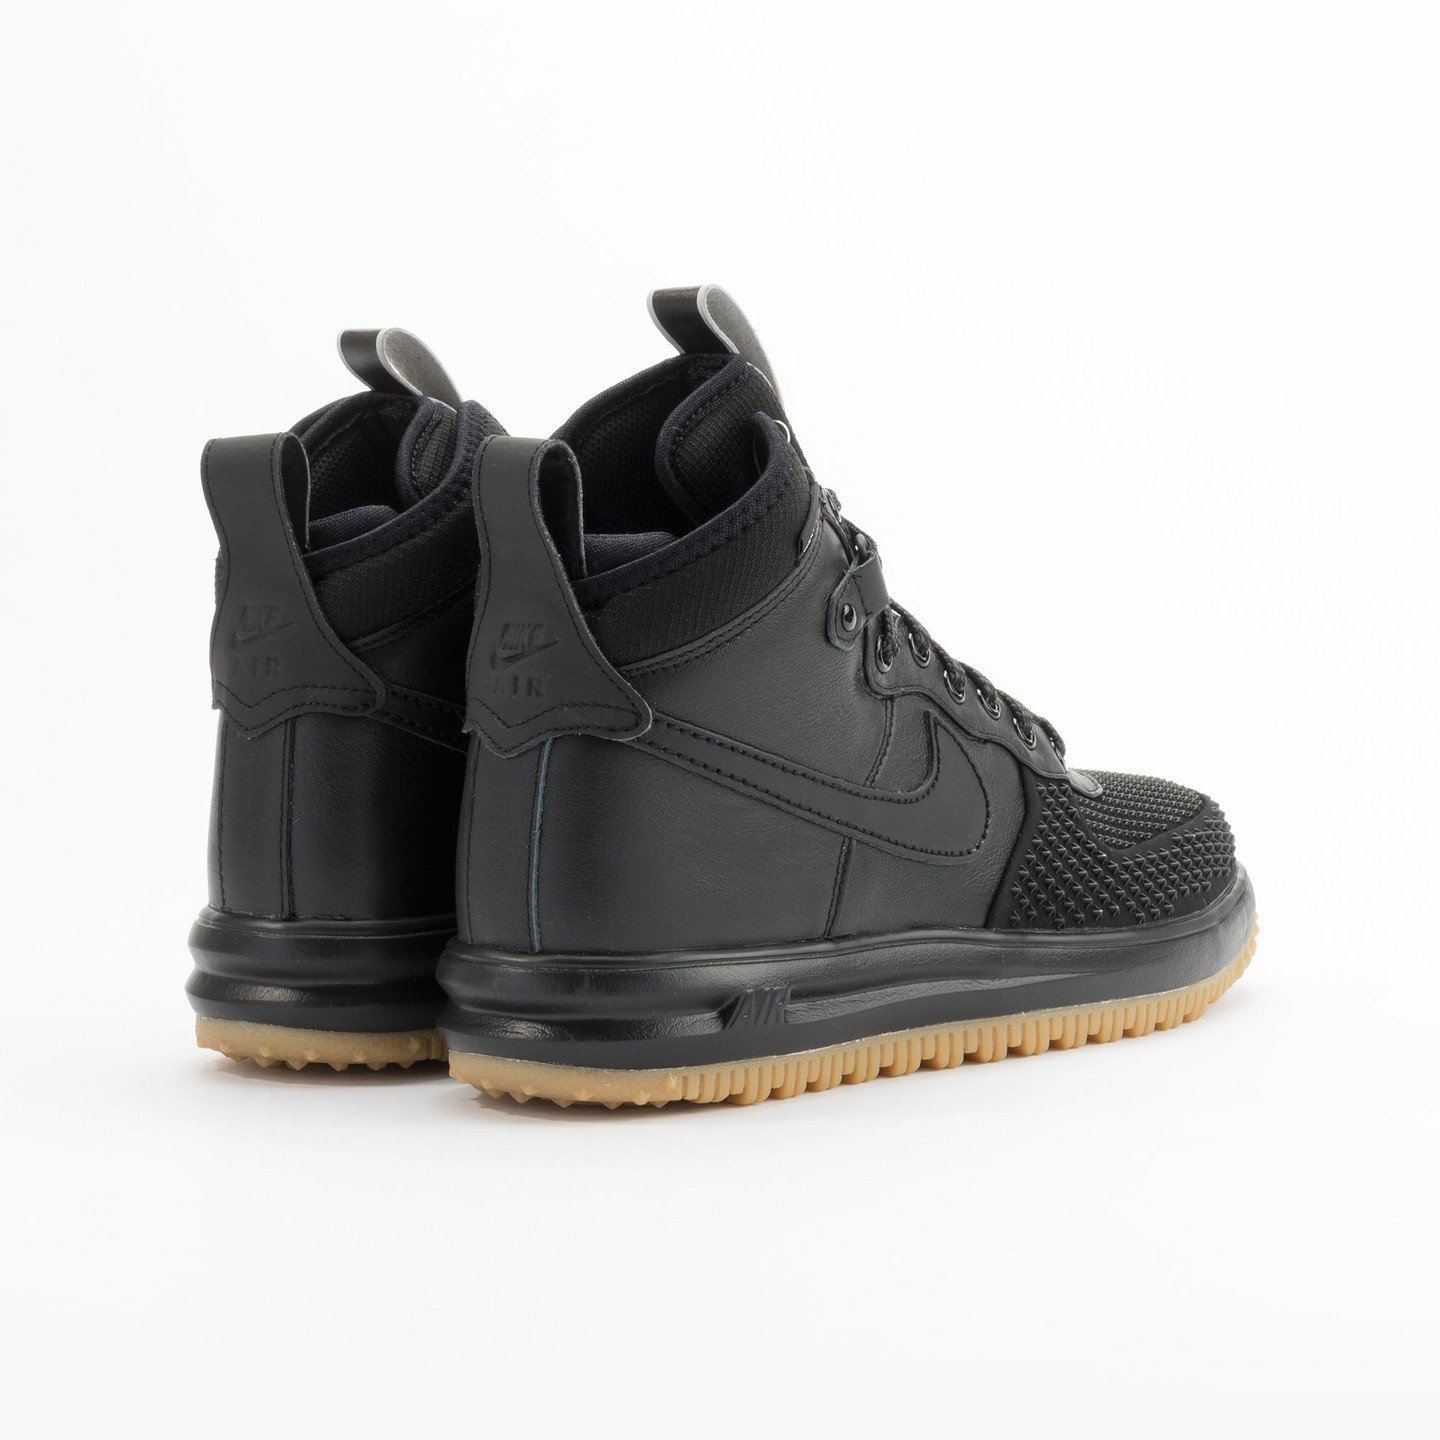 Nike Lunar Force 1 Duckboot Black / Black / Gum 805899-003-43